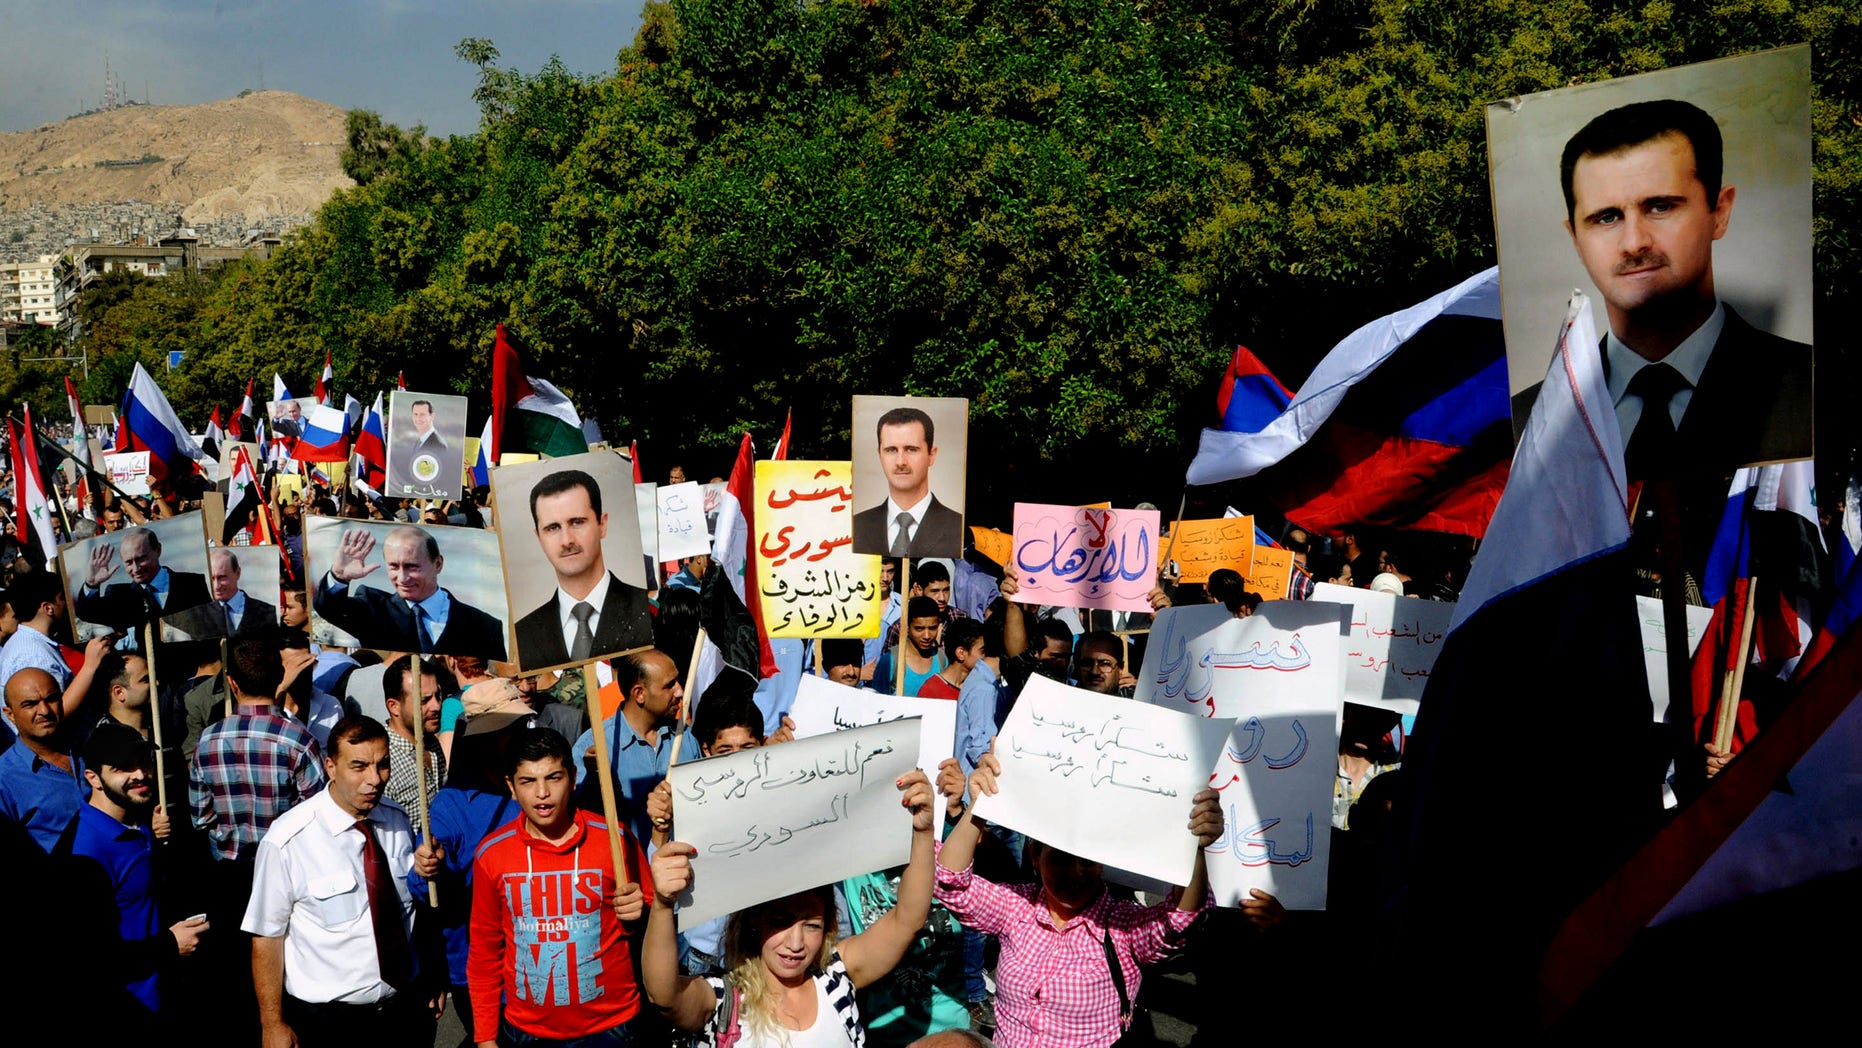 """This photo released by the Syrian official news agency SANA shows, Syrians holding photos of Syrian President Bashar Assad and Russian Prime Minister Vladimir Putin, during a protest to thank Moscow for its intervention in Syria, in front of the Russian embassy in Damascus, Syria, Tuesday, Oct. 13, 2015. Insurgents fired two shells at the Russian embassy in the Syrian capital on Tuesday as hundreds of pro-government supporters gathered outside the compound to thank Moscow for its intervention in Syria. The placards in Arabic read, """"yes to Russian-Syrian cooperation,"""" center left,  and """"thank you Russia, thank you Russia,"""" center right. (SANA via AP)"""